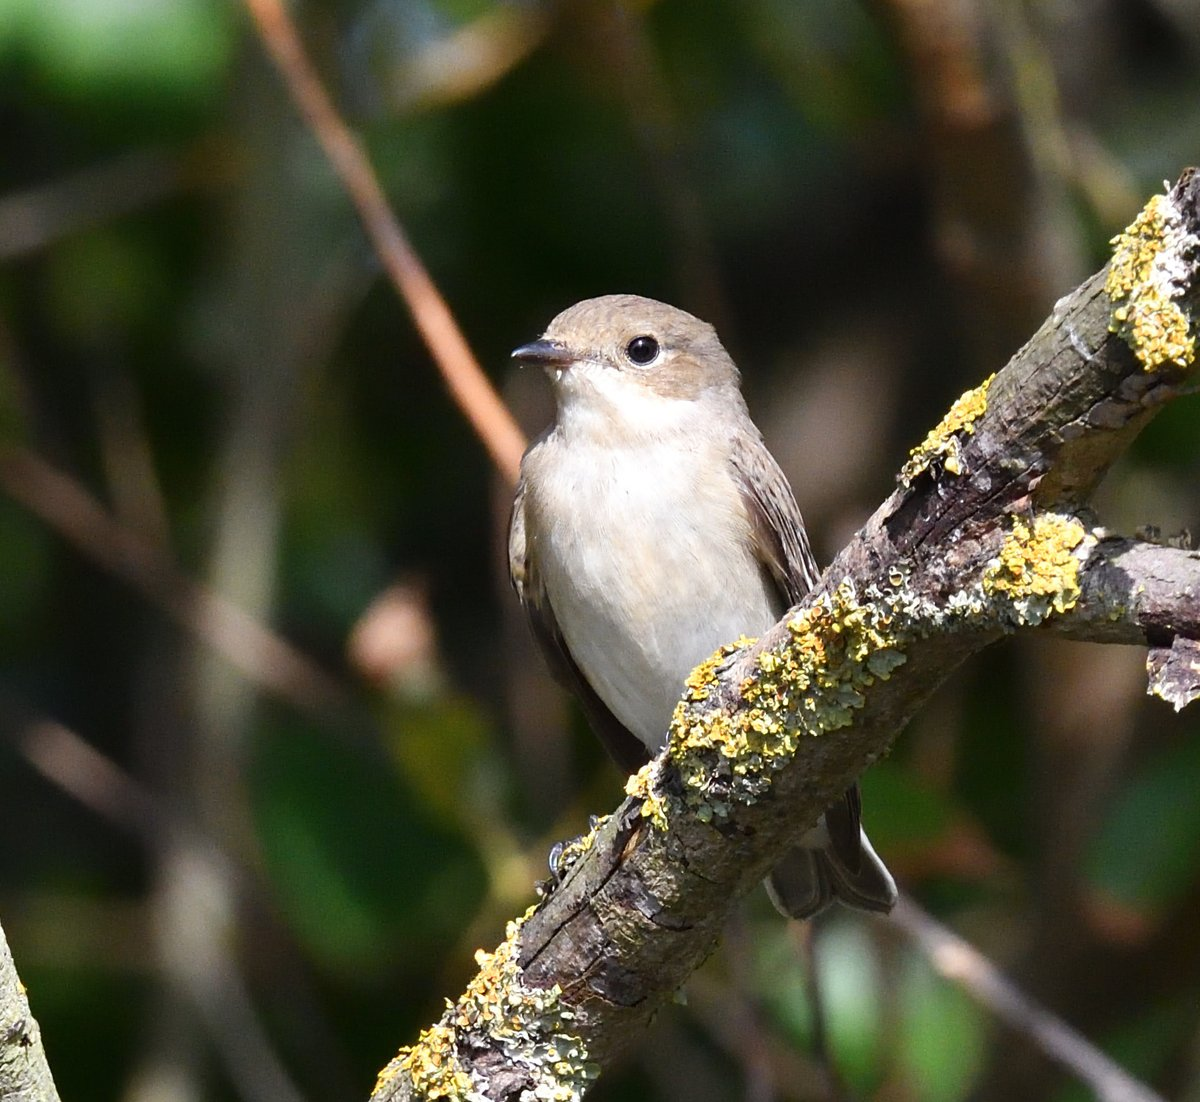 This ringed #PiedFlycatcher spent most of the day in the trees by the road between the pub and Kew Villa, it kept dropping to the pavement presumably for insects but the cars kept speeding around the corner pushing it back into the trees again - stressful to watch! #SpurnBirds https://t.co/Nm6tbuEnGD